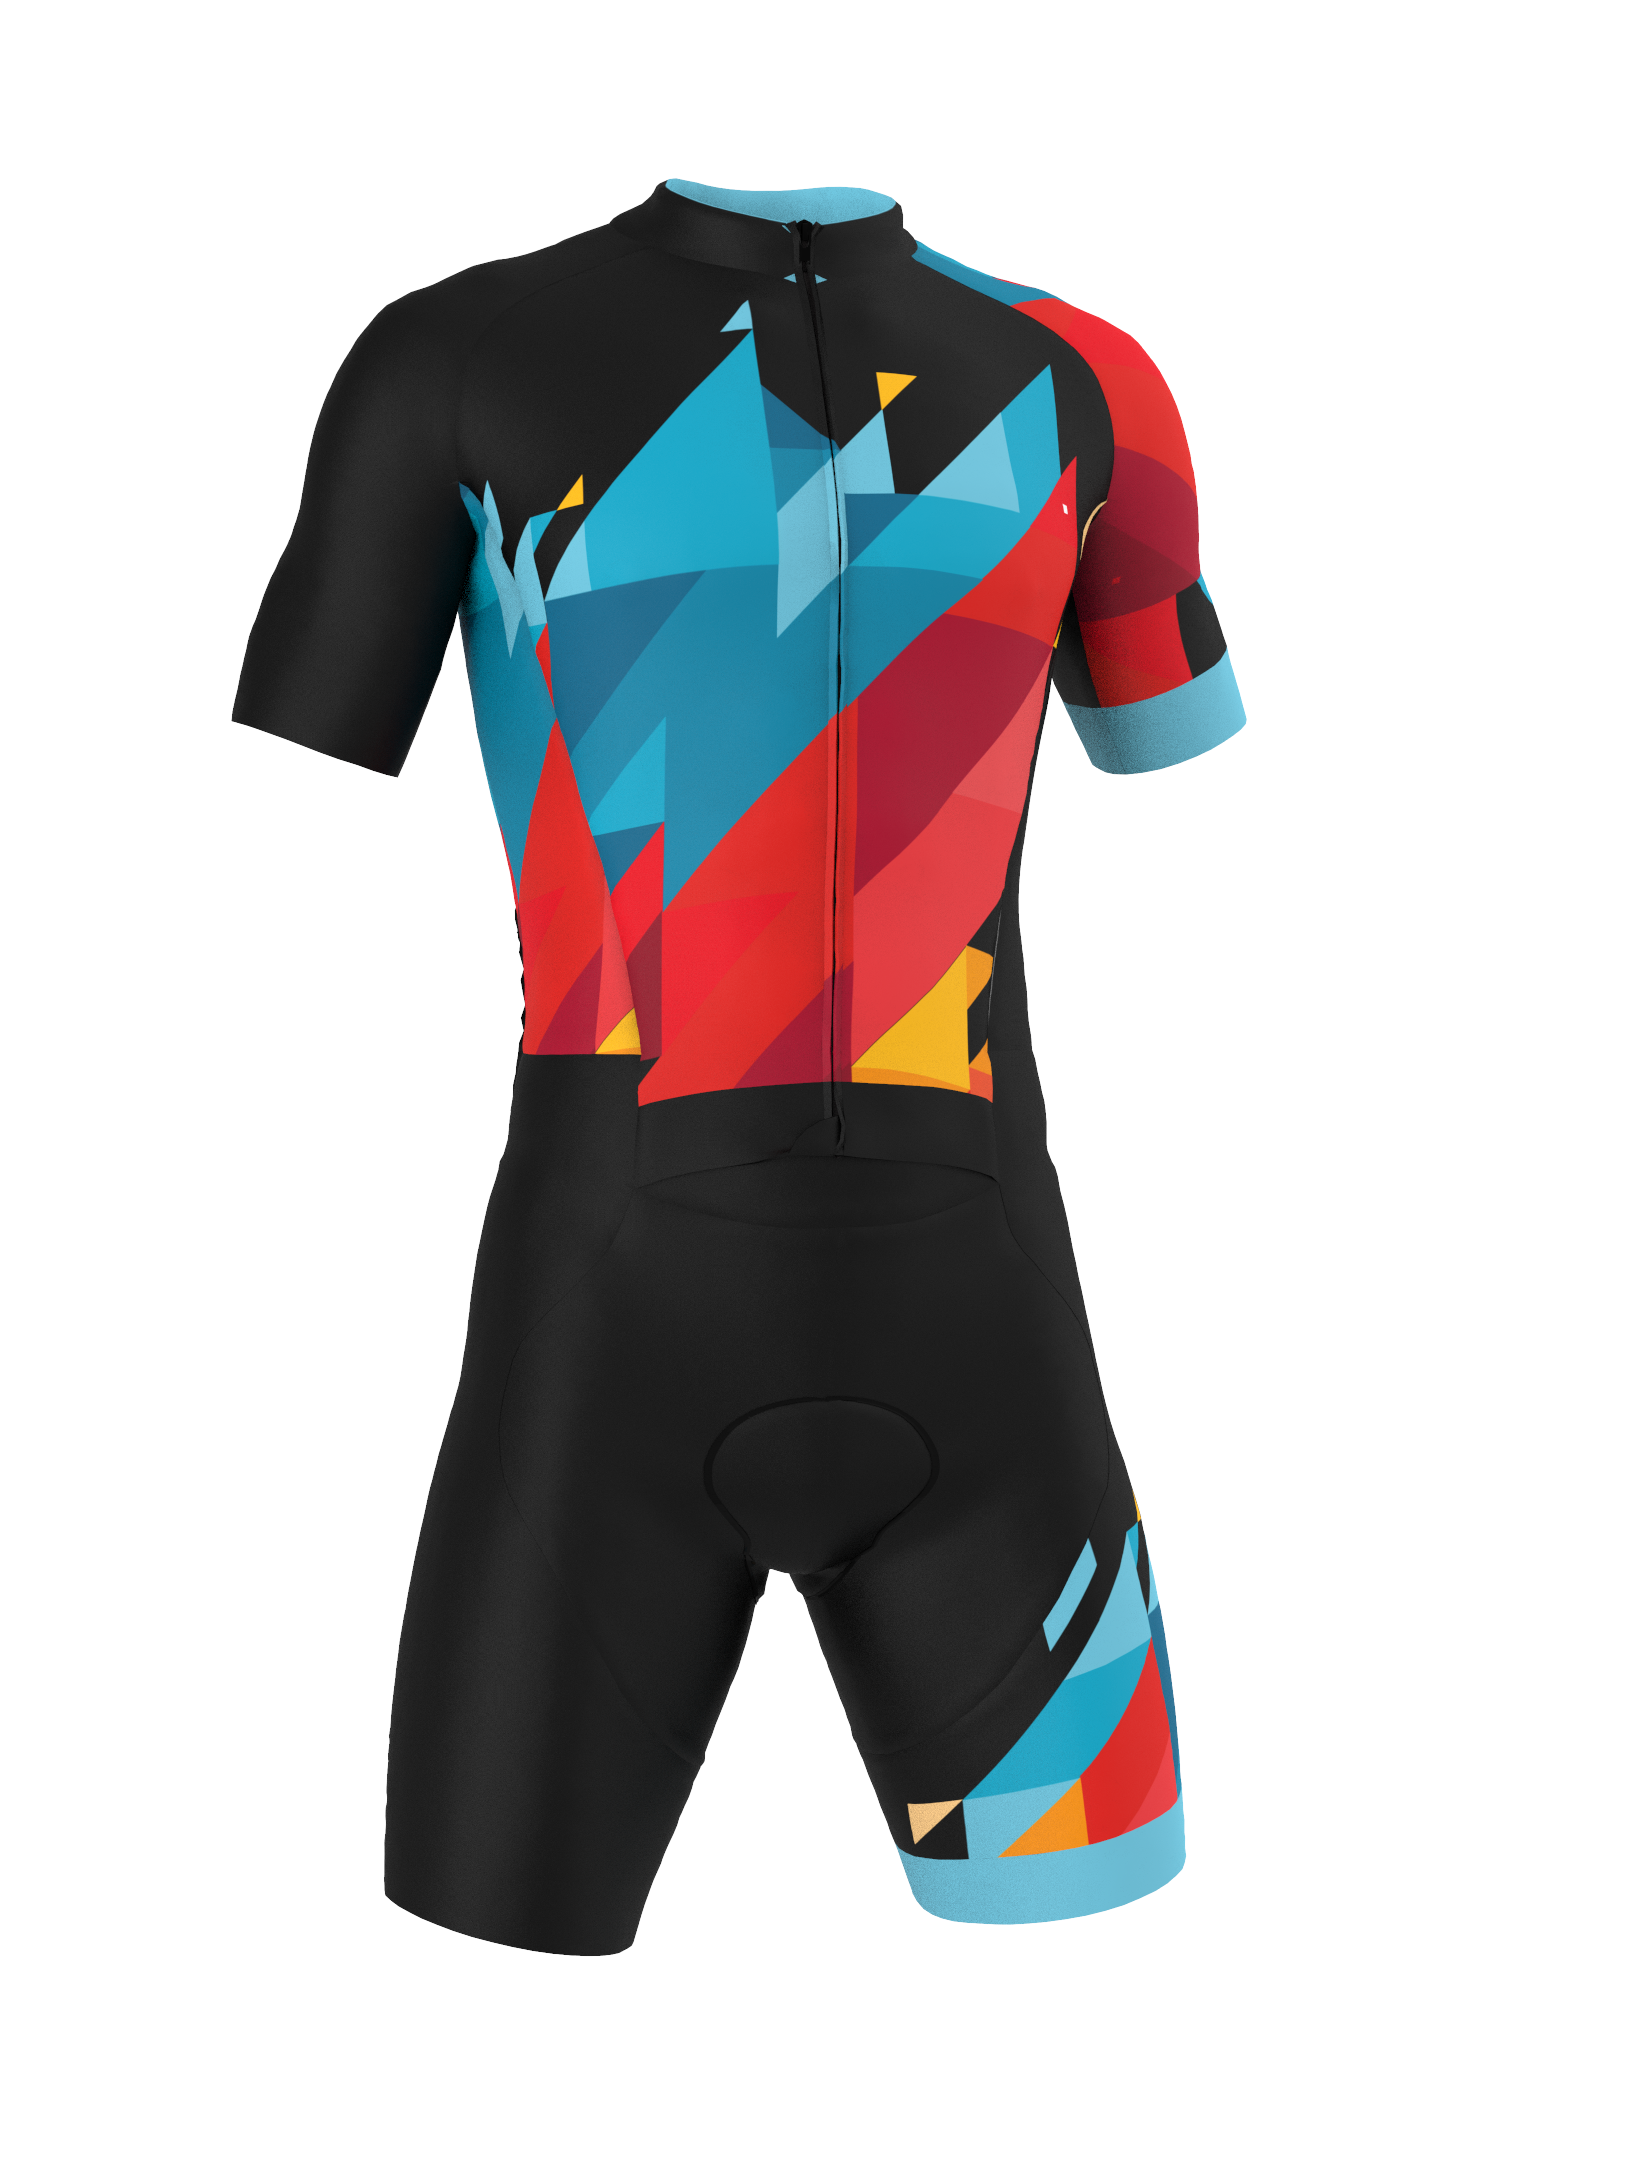 9c3d2d180 Professional  GEO  Road Suit (skinsuit) Made in Italy by GSG